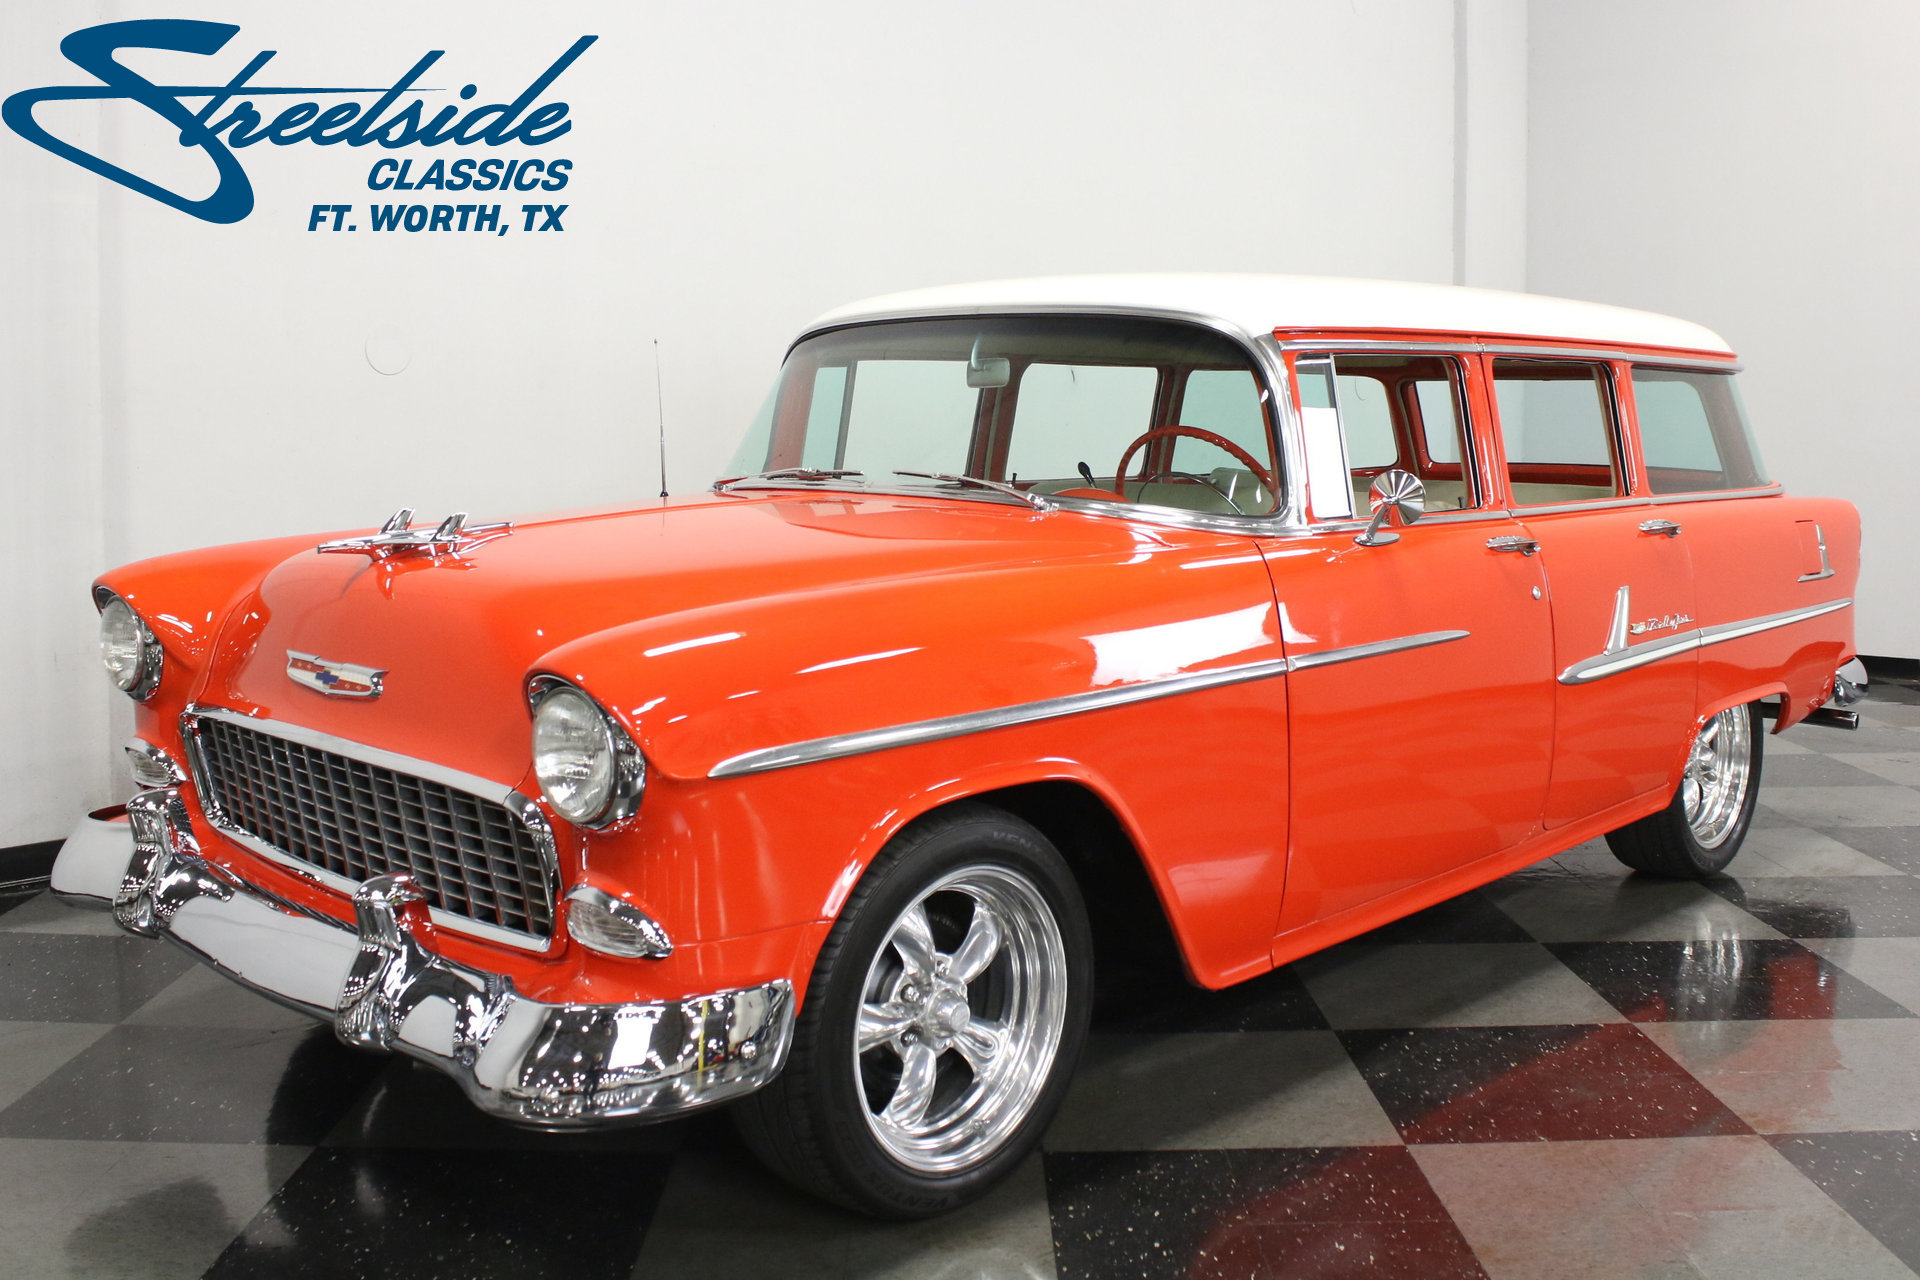 1955 Chevrolet Bel Air Streetside Classics The Nations Trusted Chevy Spincar View Play Video